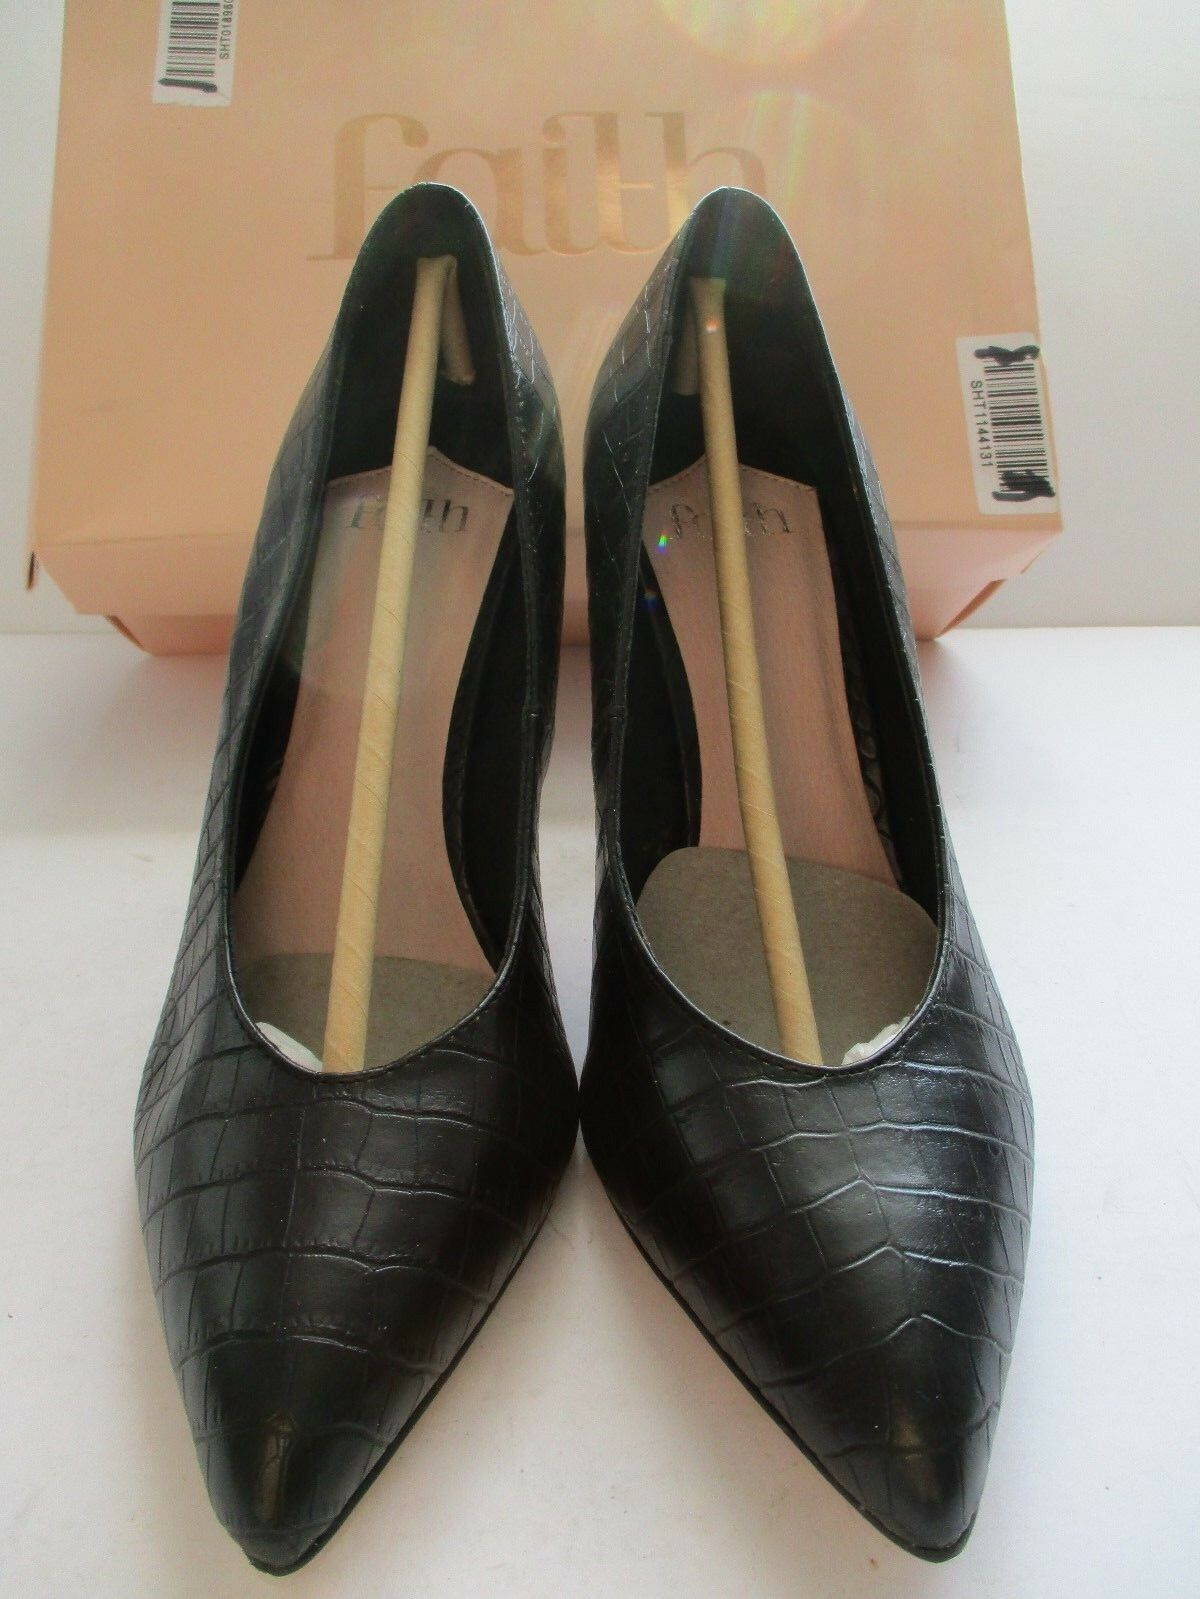 FAITH CAMBODIA LADIES BLACK POINTED PATTERNED COURT SHOE SIZE 7/40 STILETTO NEW